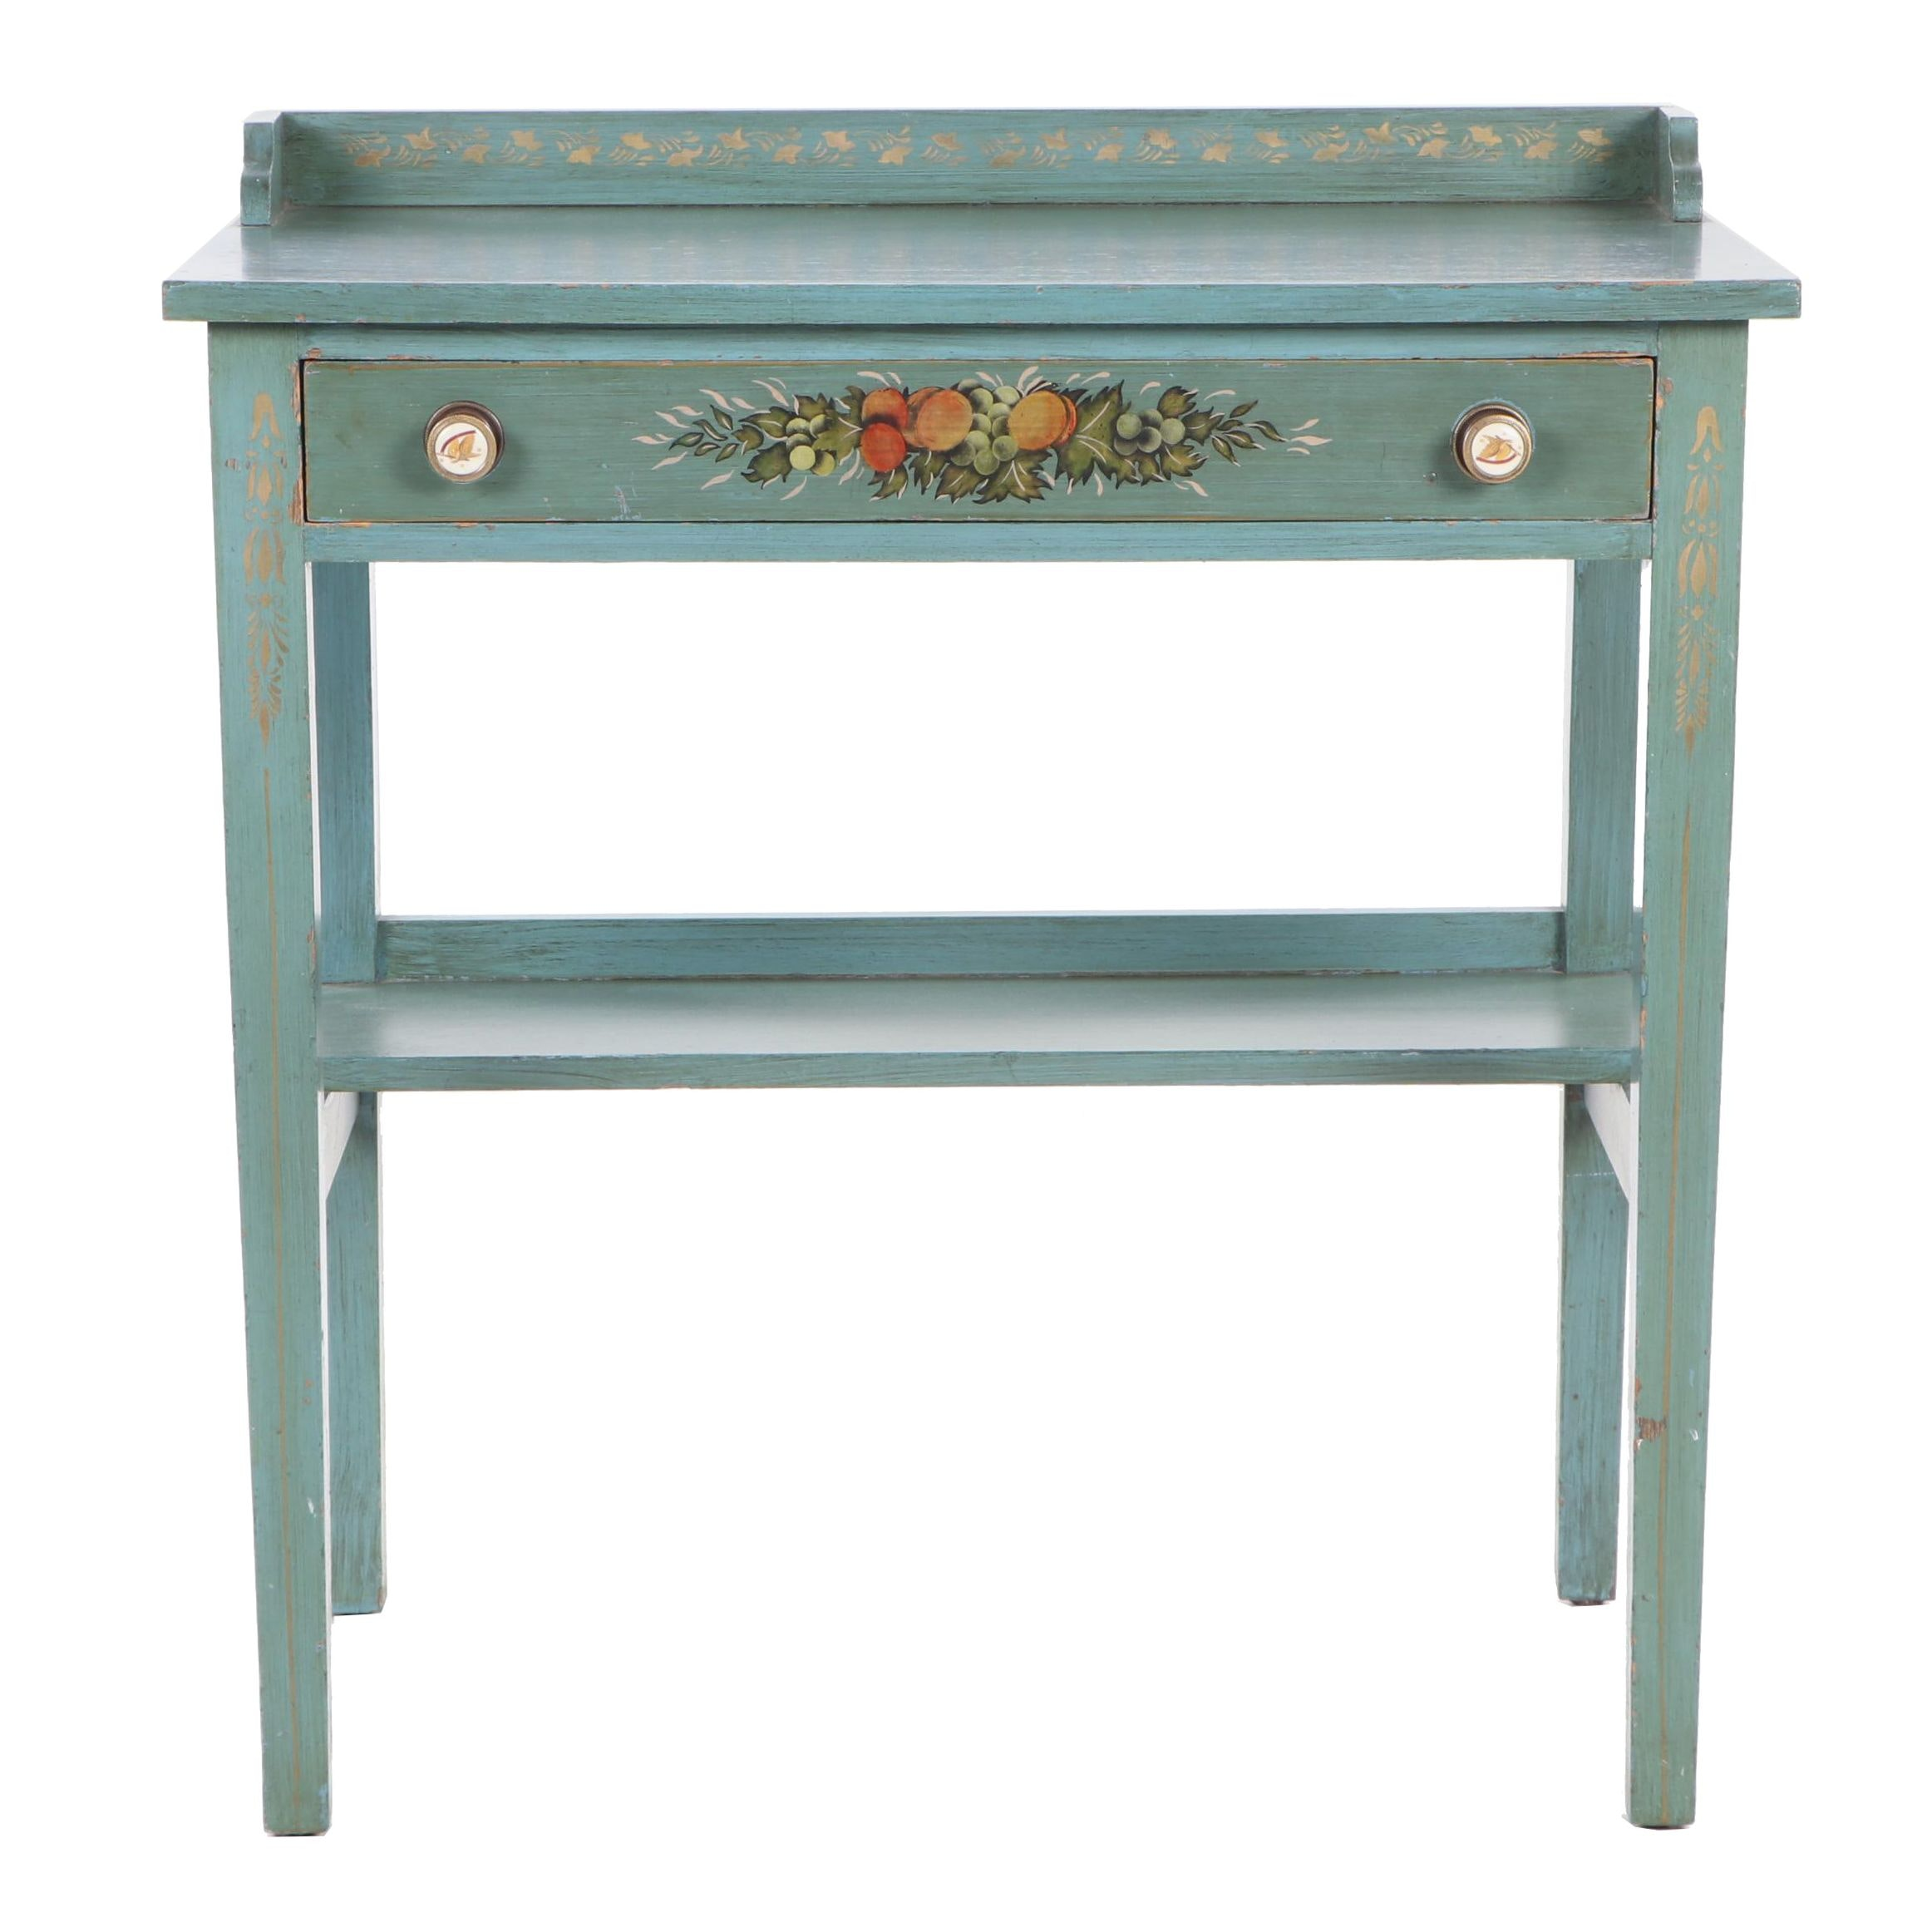 French Provincial Paine Furniture Co. Painted Wooden Desk